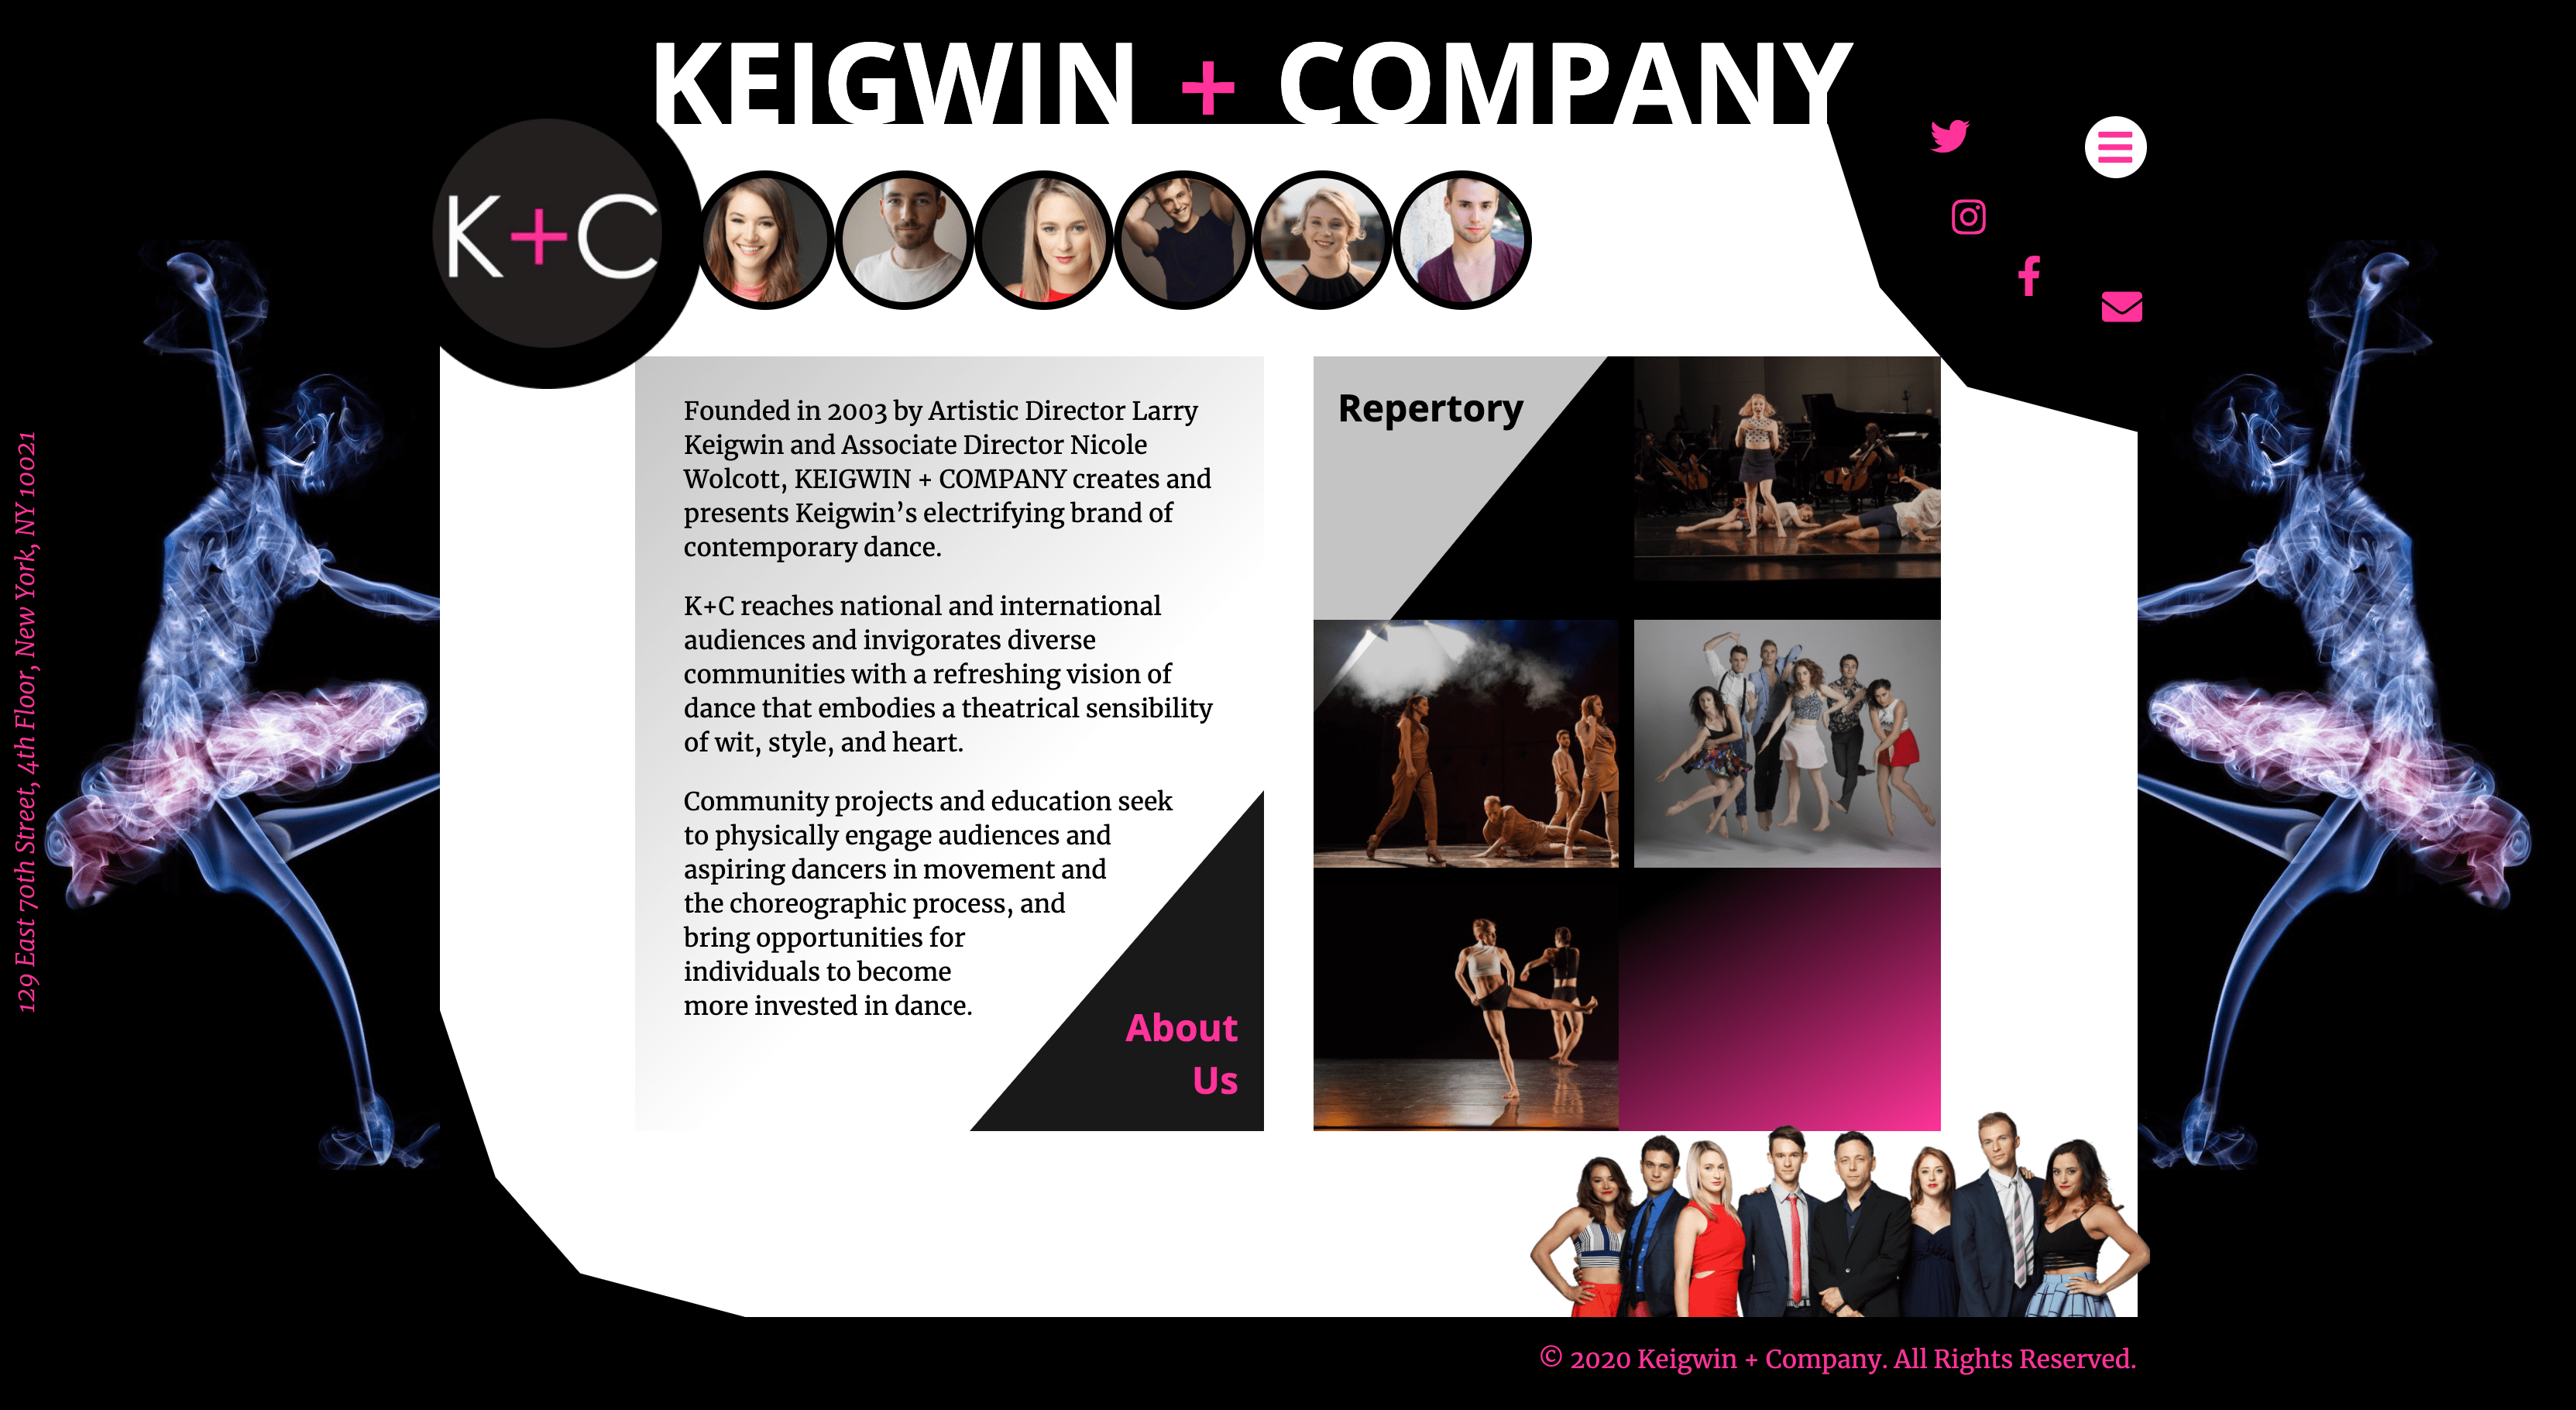 Keigwin and Company